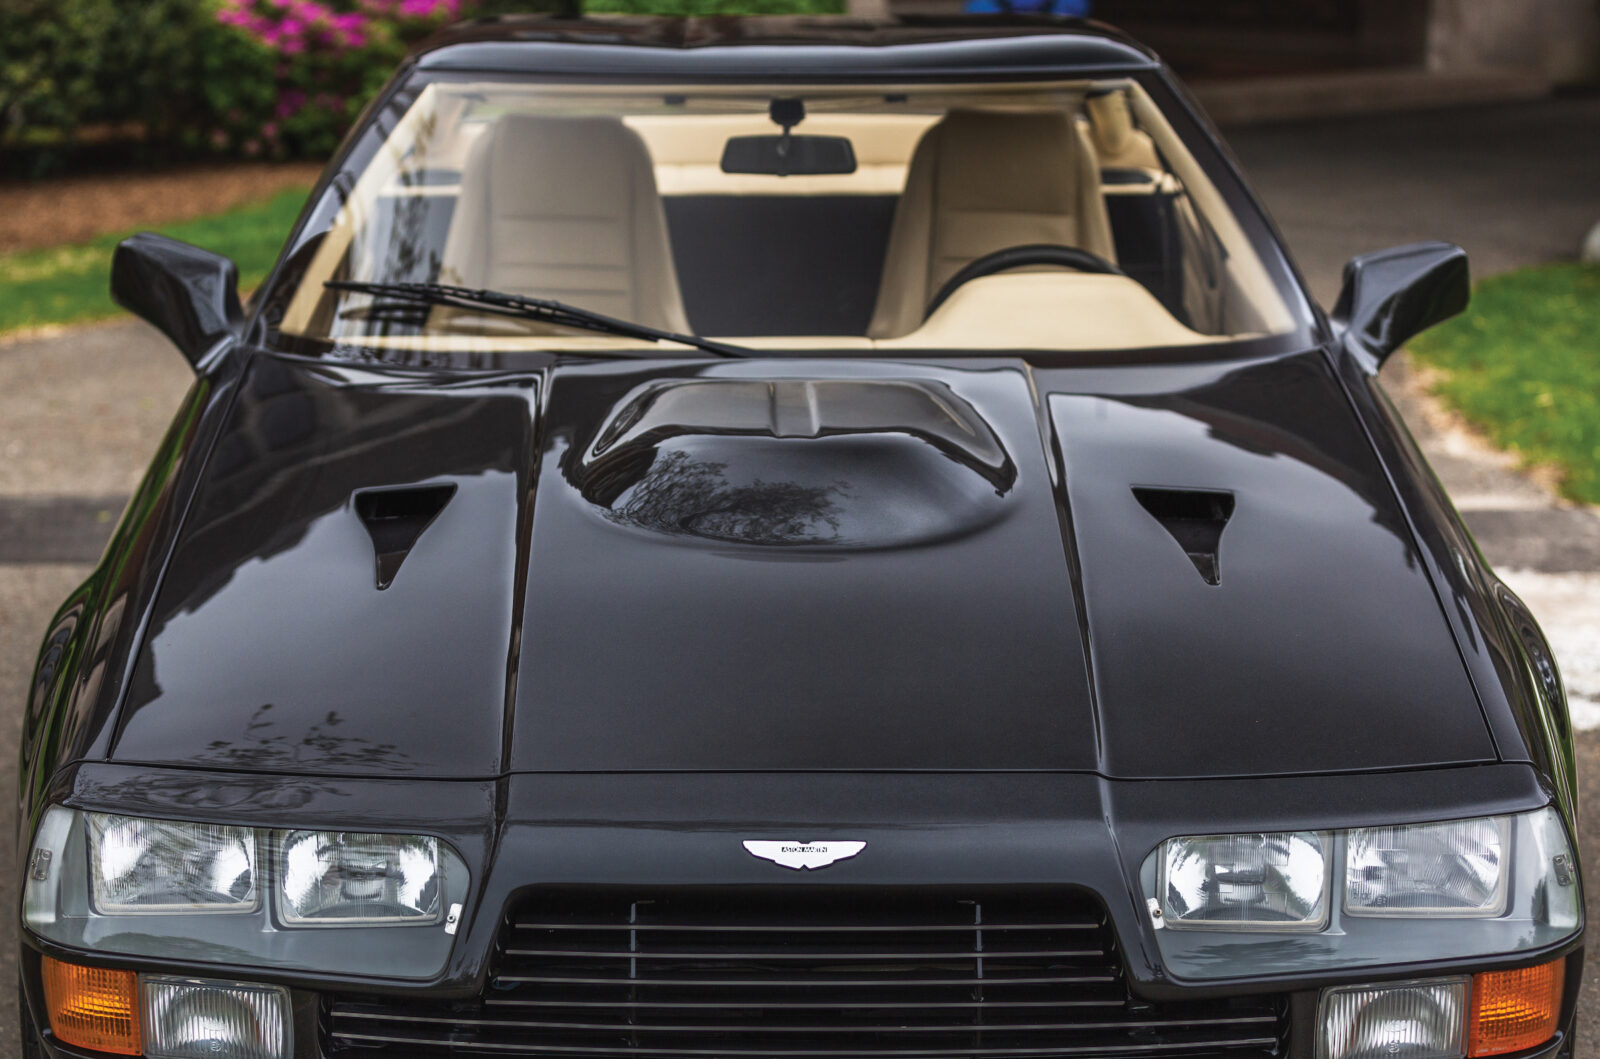 The Rare Aston Martin V8 Vantage Zagato - A Late-80s Supercar Killer